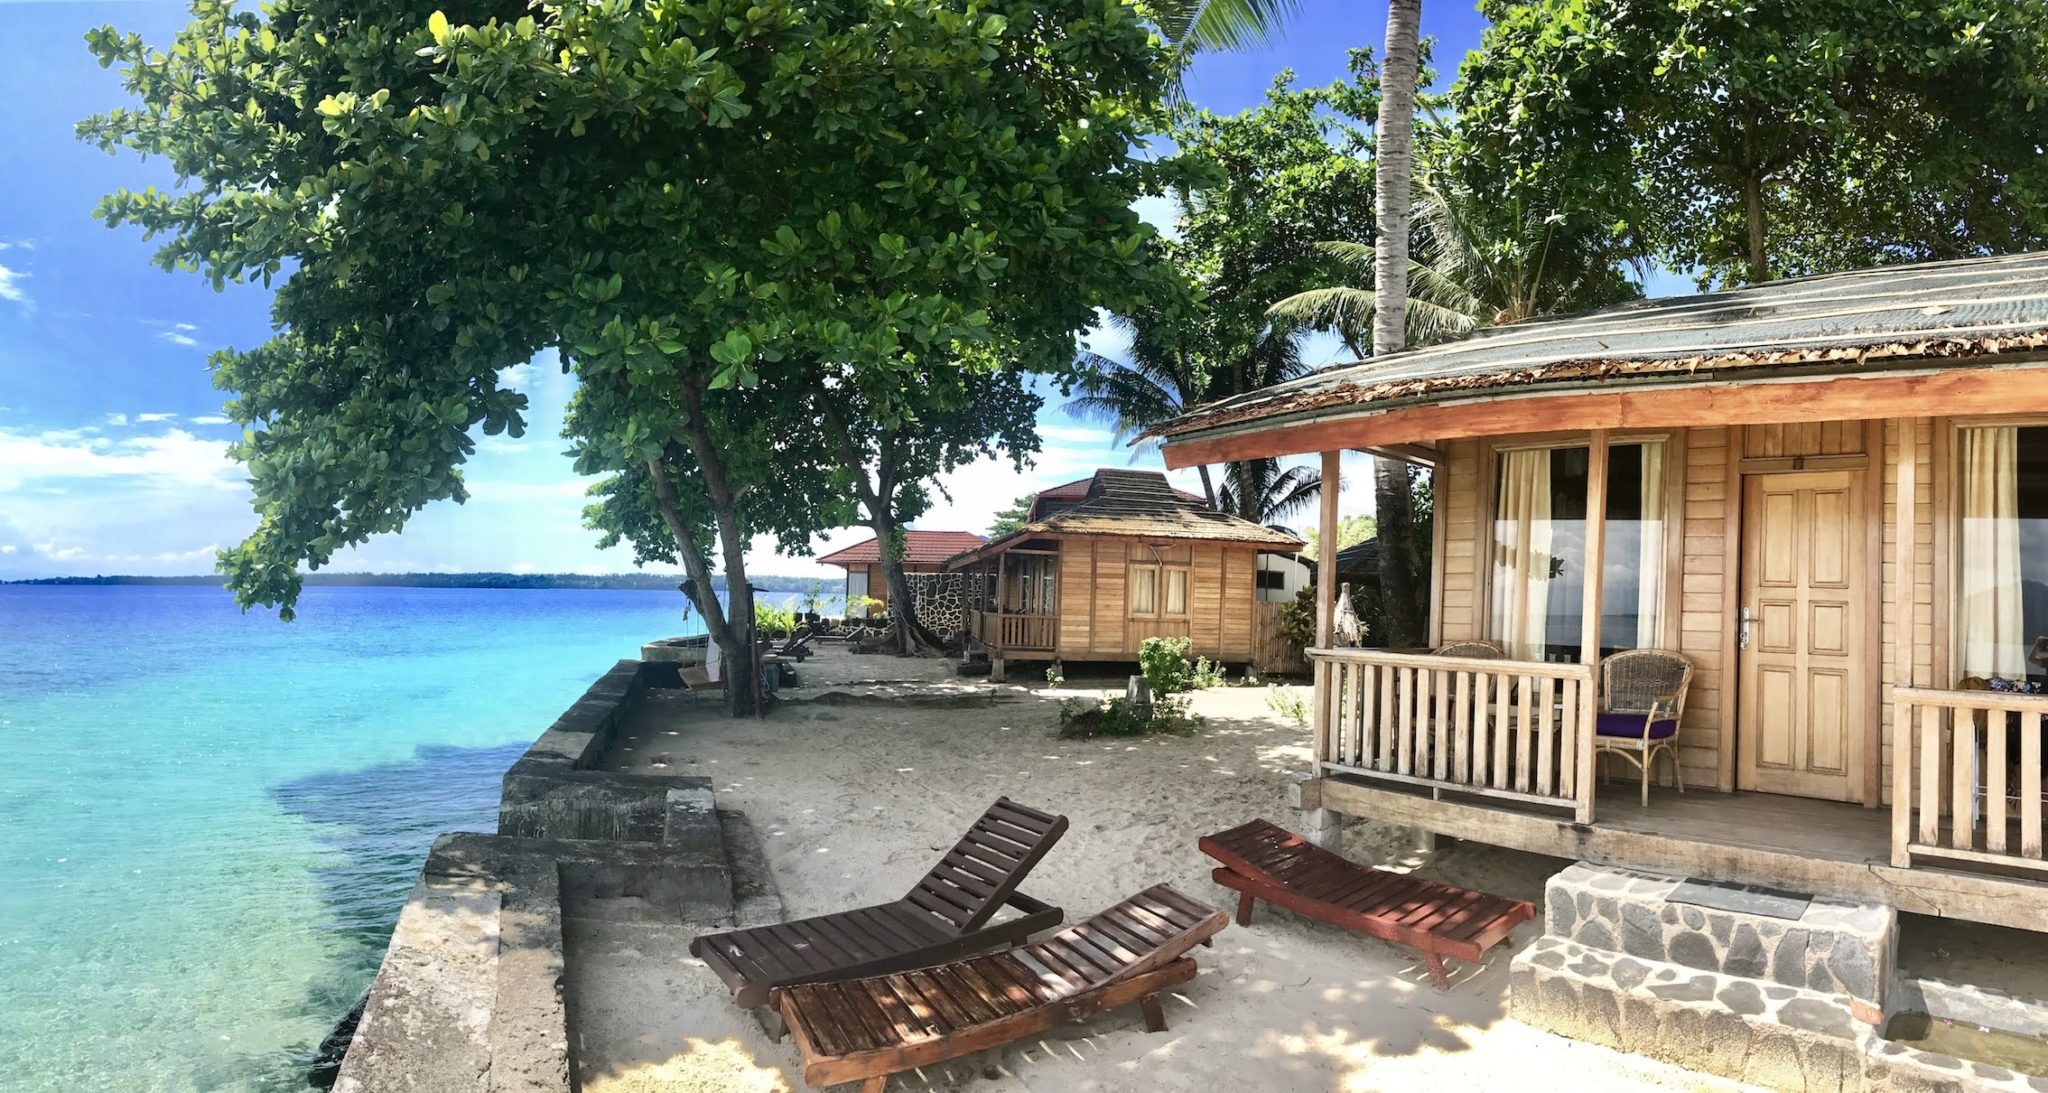 A Lovely Planet - North Sulawesi - Sarah & James - Onong Resort